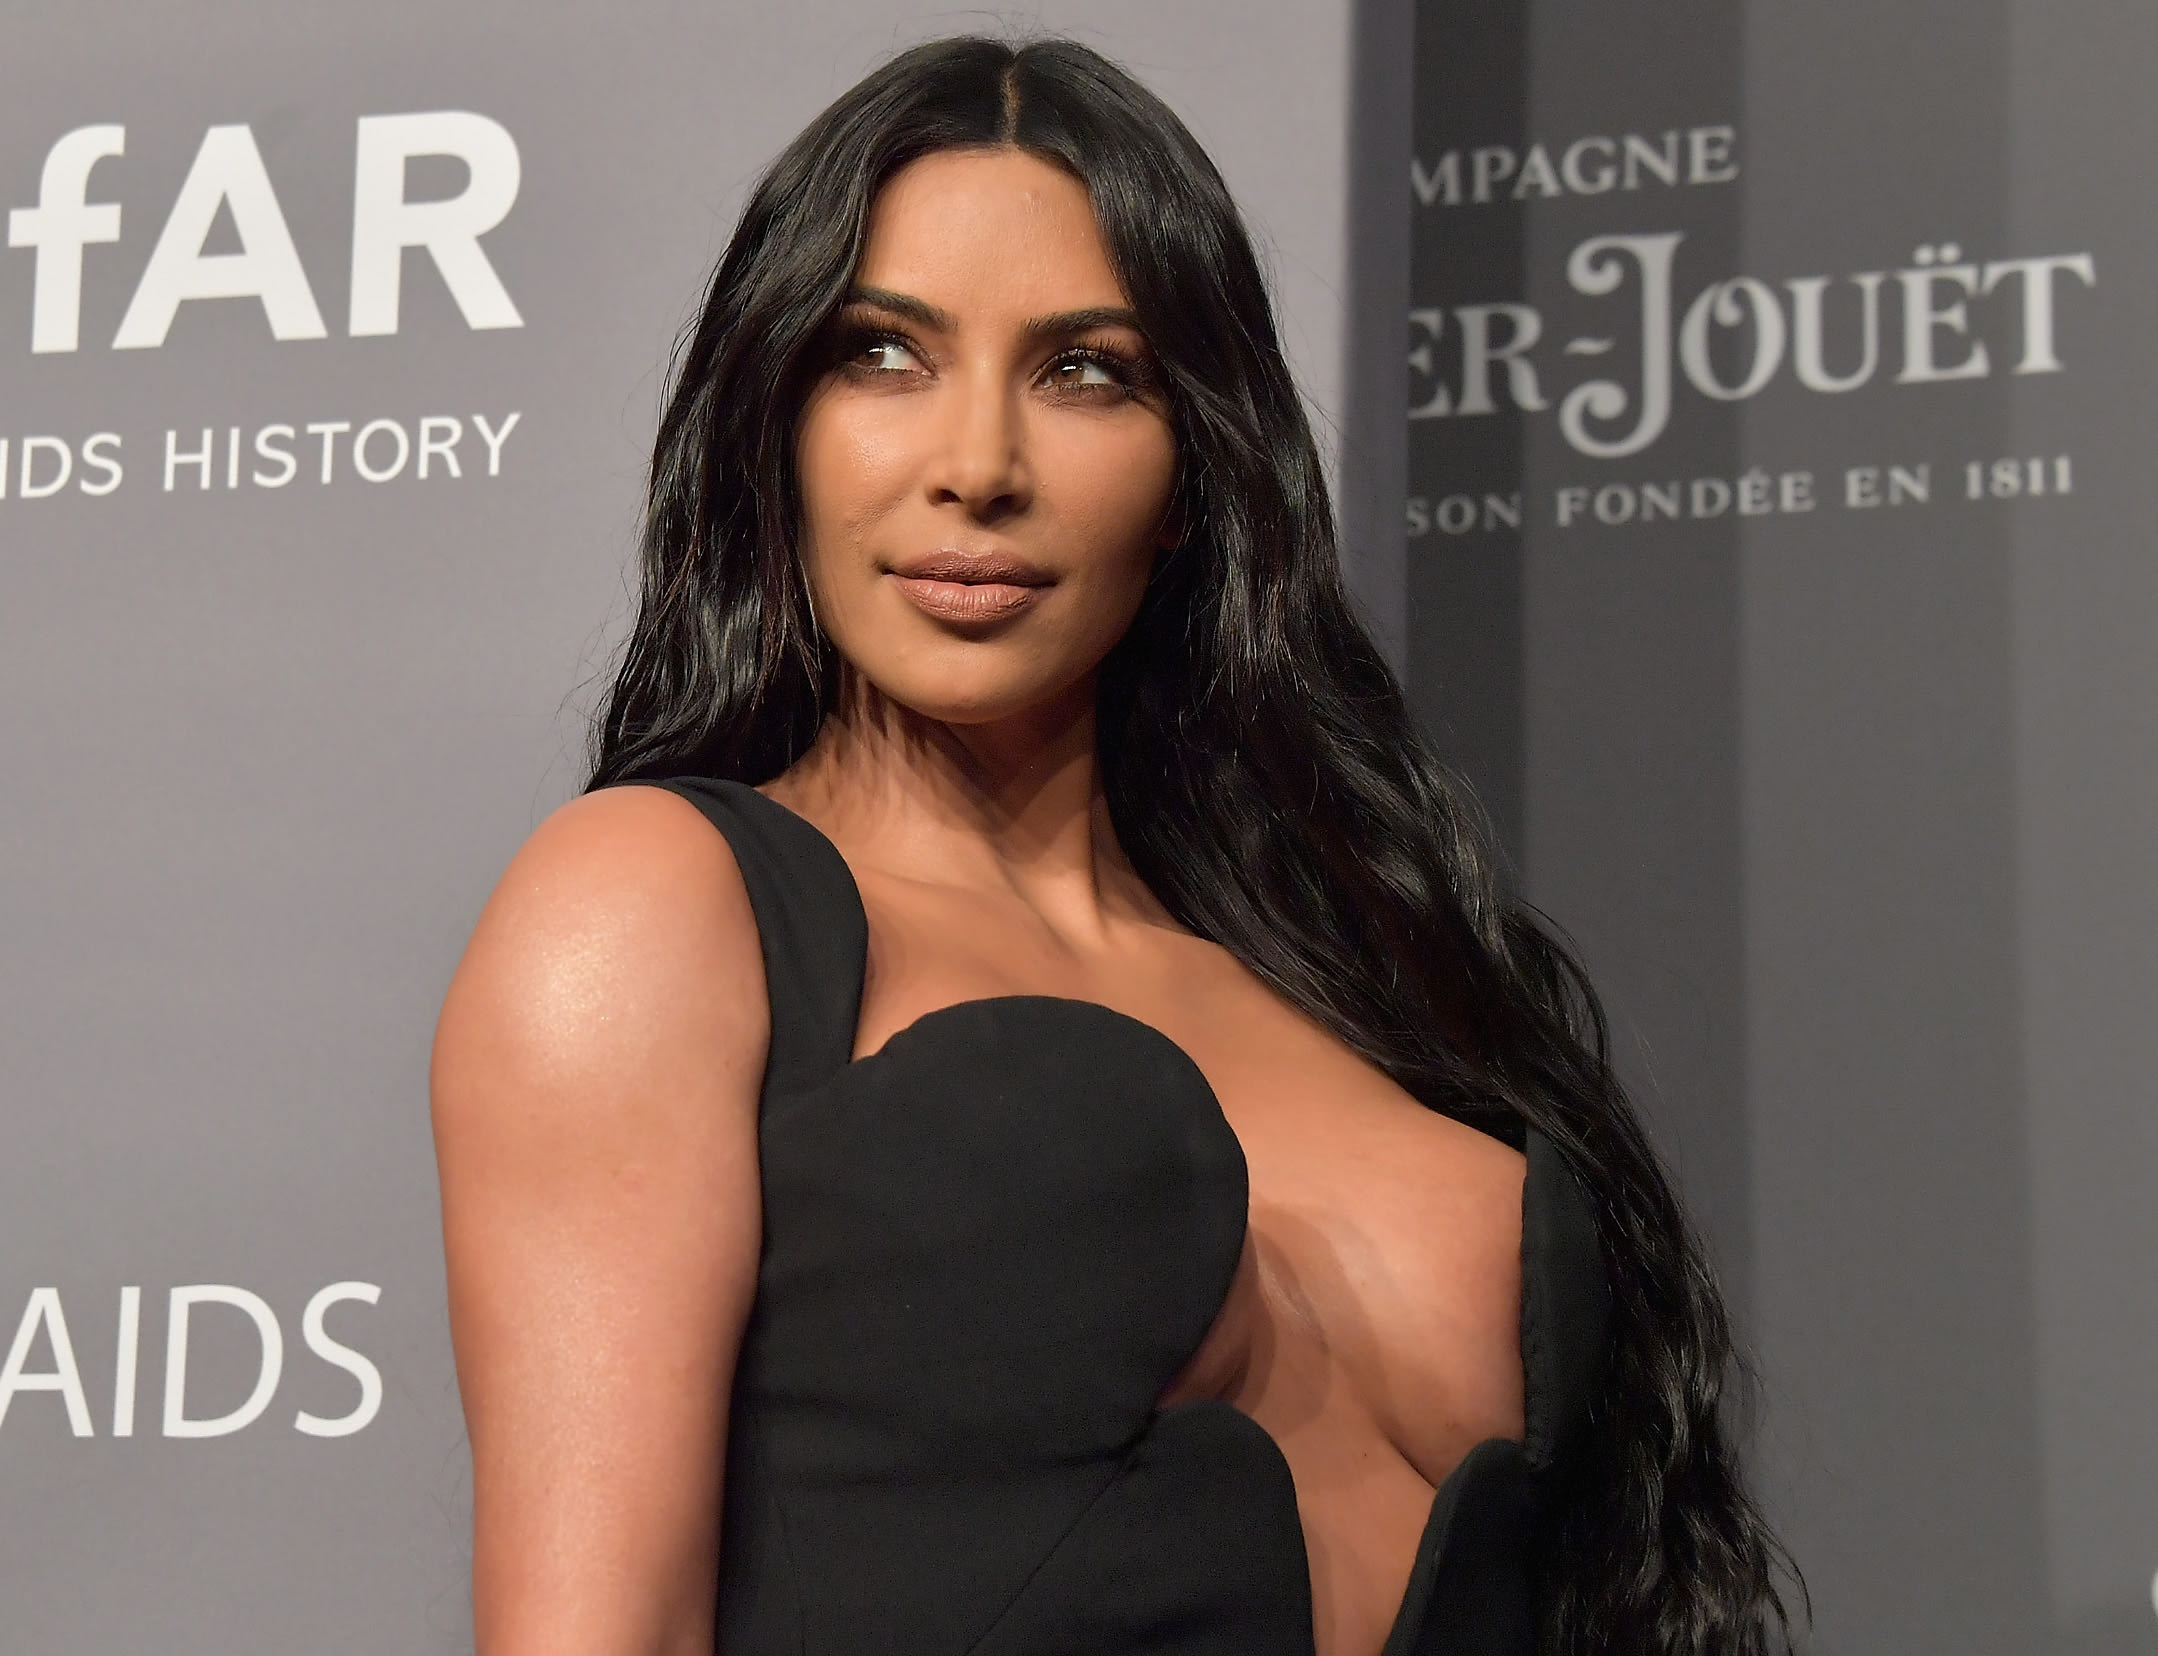 Kim Kardashian Basically Got Naked on This Red Carpet and Twitter Came at Her So Hard - The Hollywood Gossip